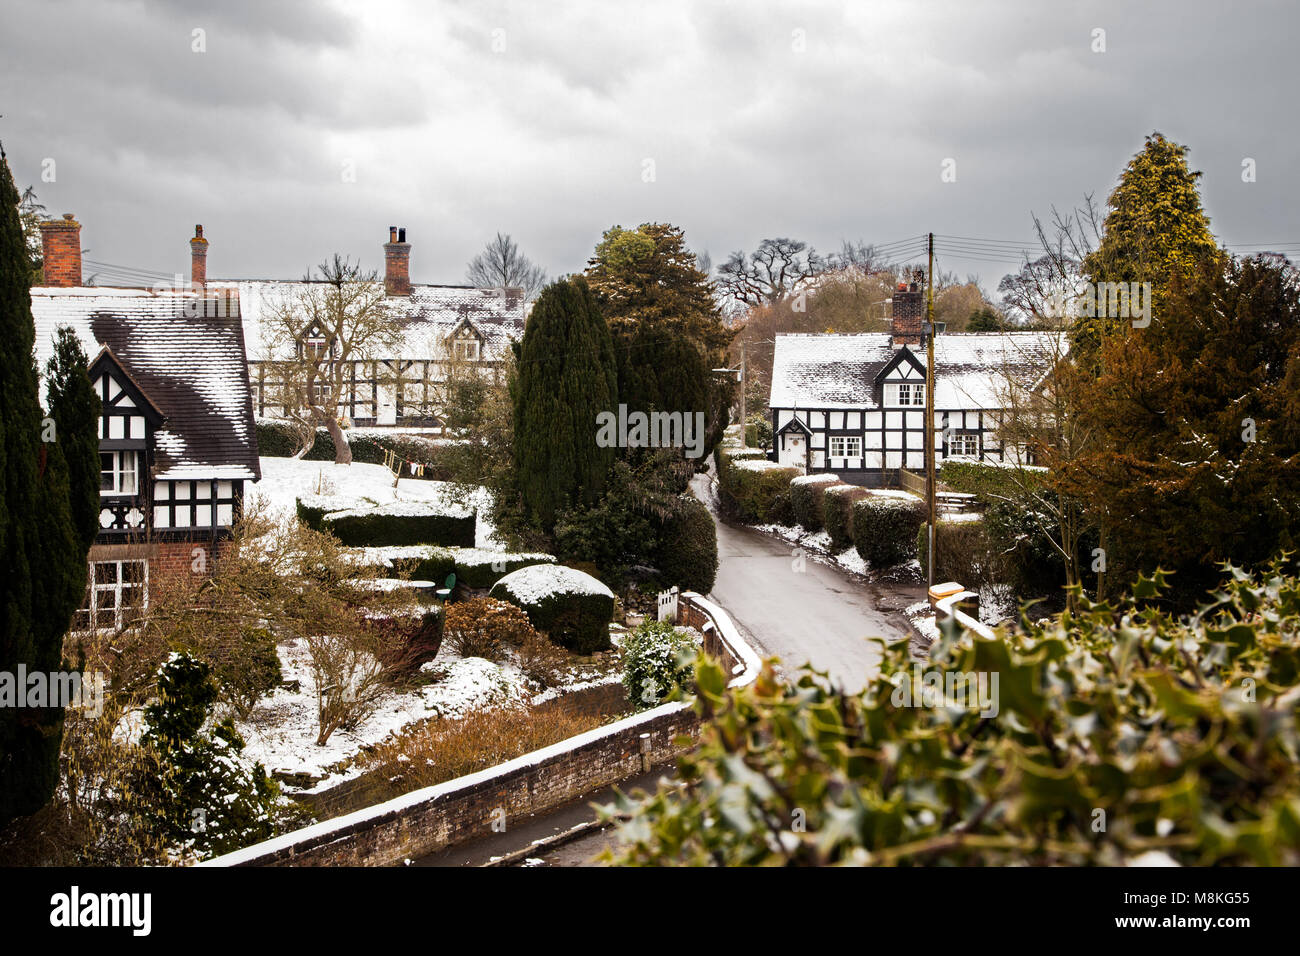 Snow covered black and white half timbered houses in the picturesque   Cheshire village of Barthomley  England UK - Stock Image